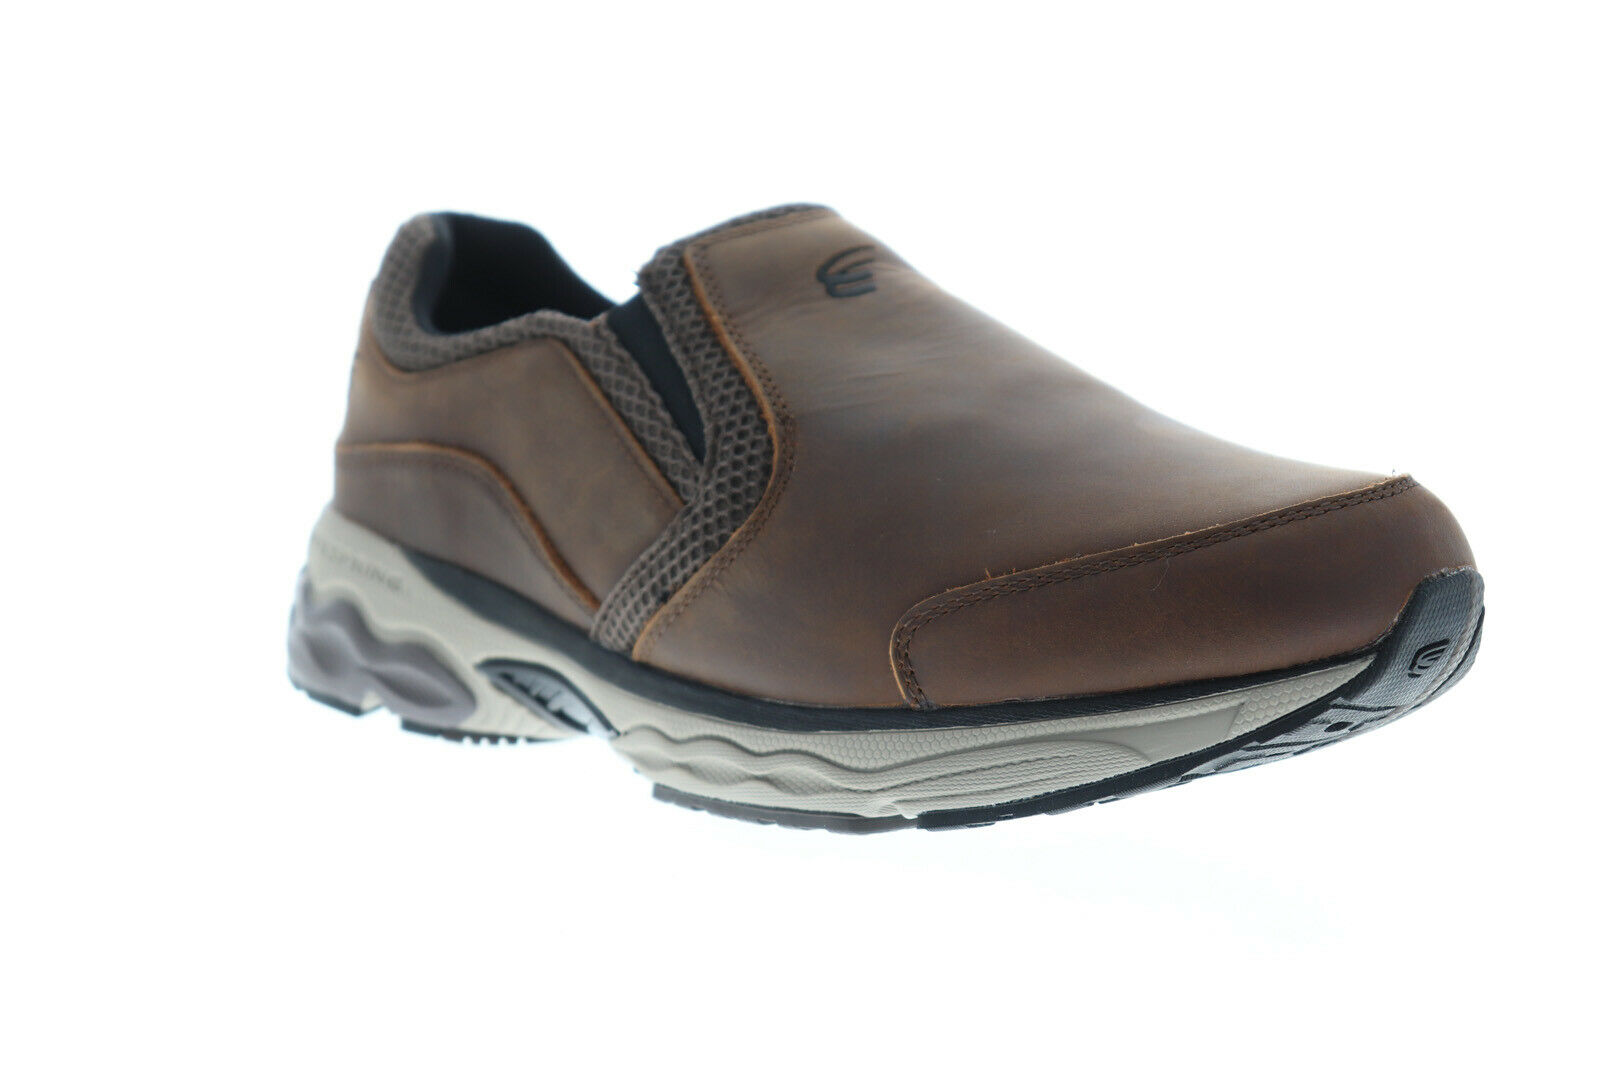 Spira Taurus Leather Moc Mens Brown Wide 2E Athletic  Gym Low Top Walking shoes  more affordable